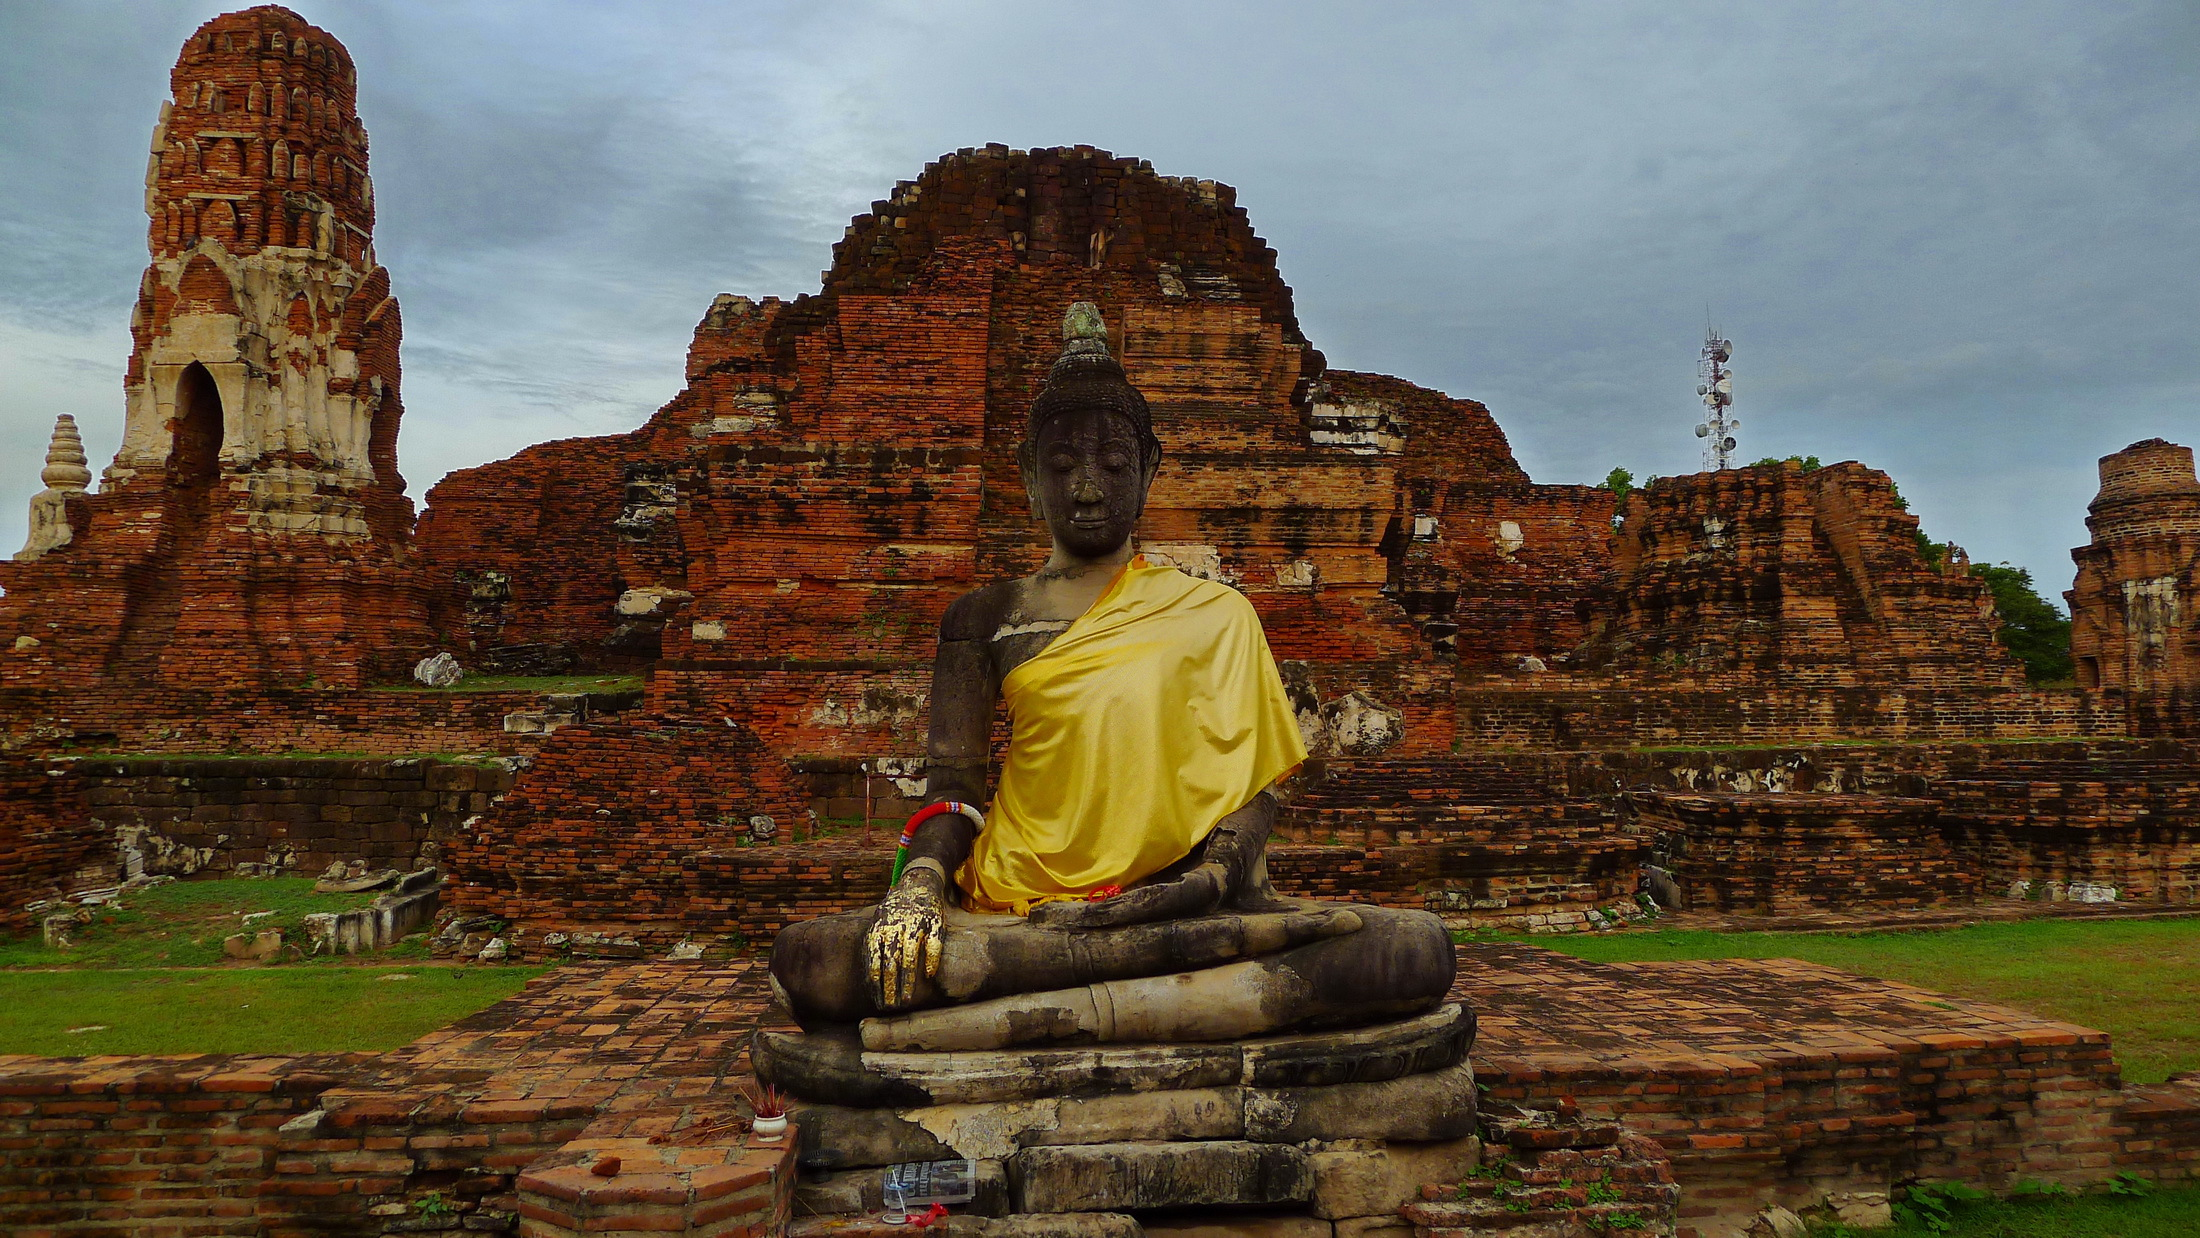 Buddha Hd Wallpaper 1080p Buddha On A Background Of Ruins Of The Temple At The